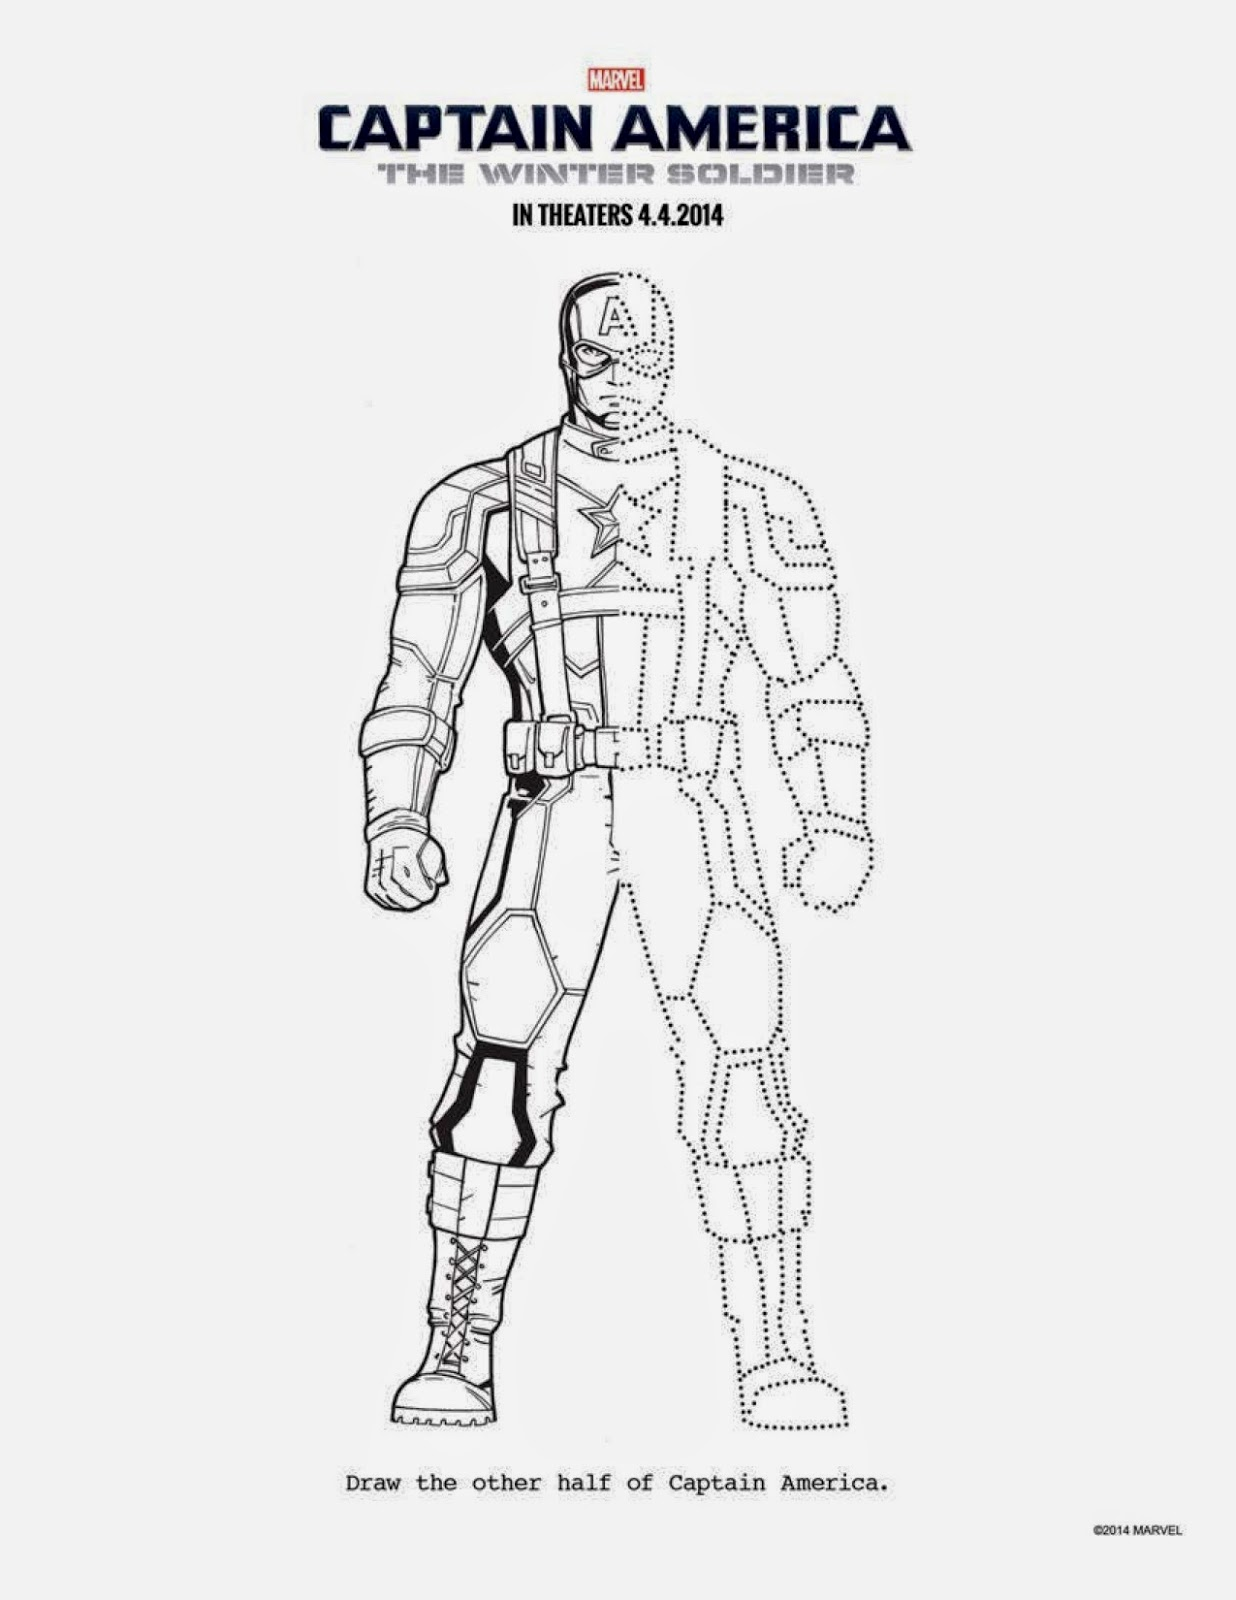 free Captain America activities and coloring sheets, #CaptainAmerica